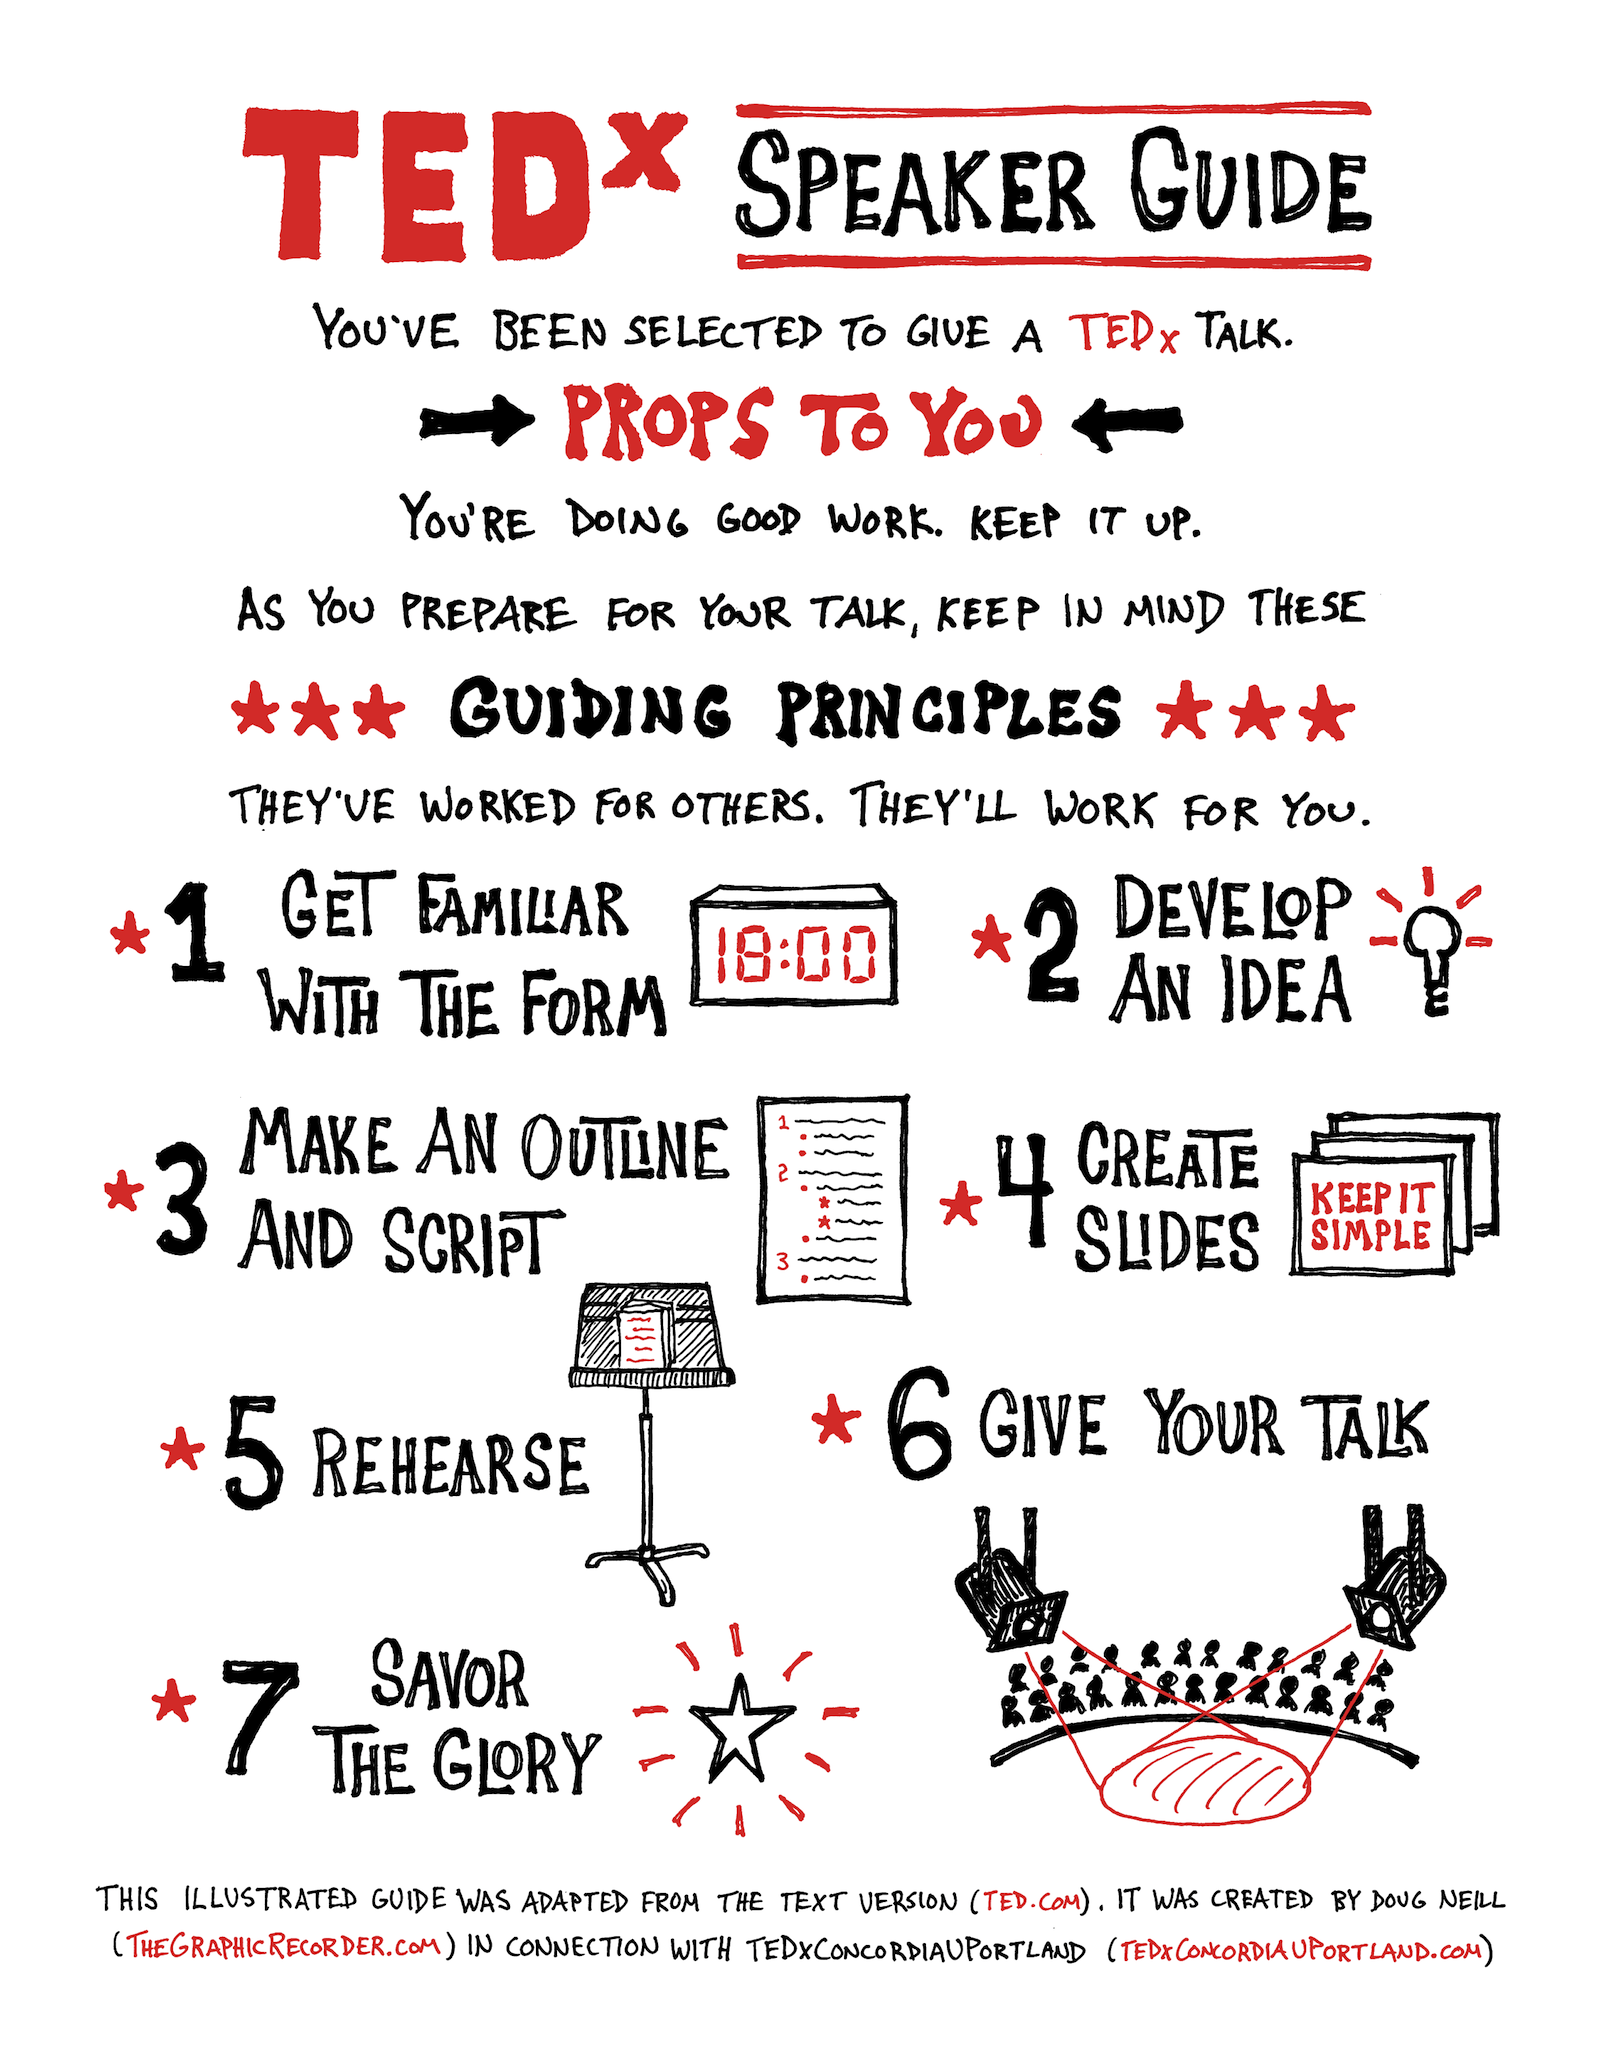 Illustrated TEDx Speaker Guide - Doug Neill